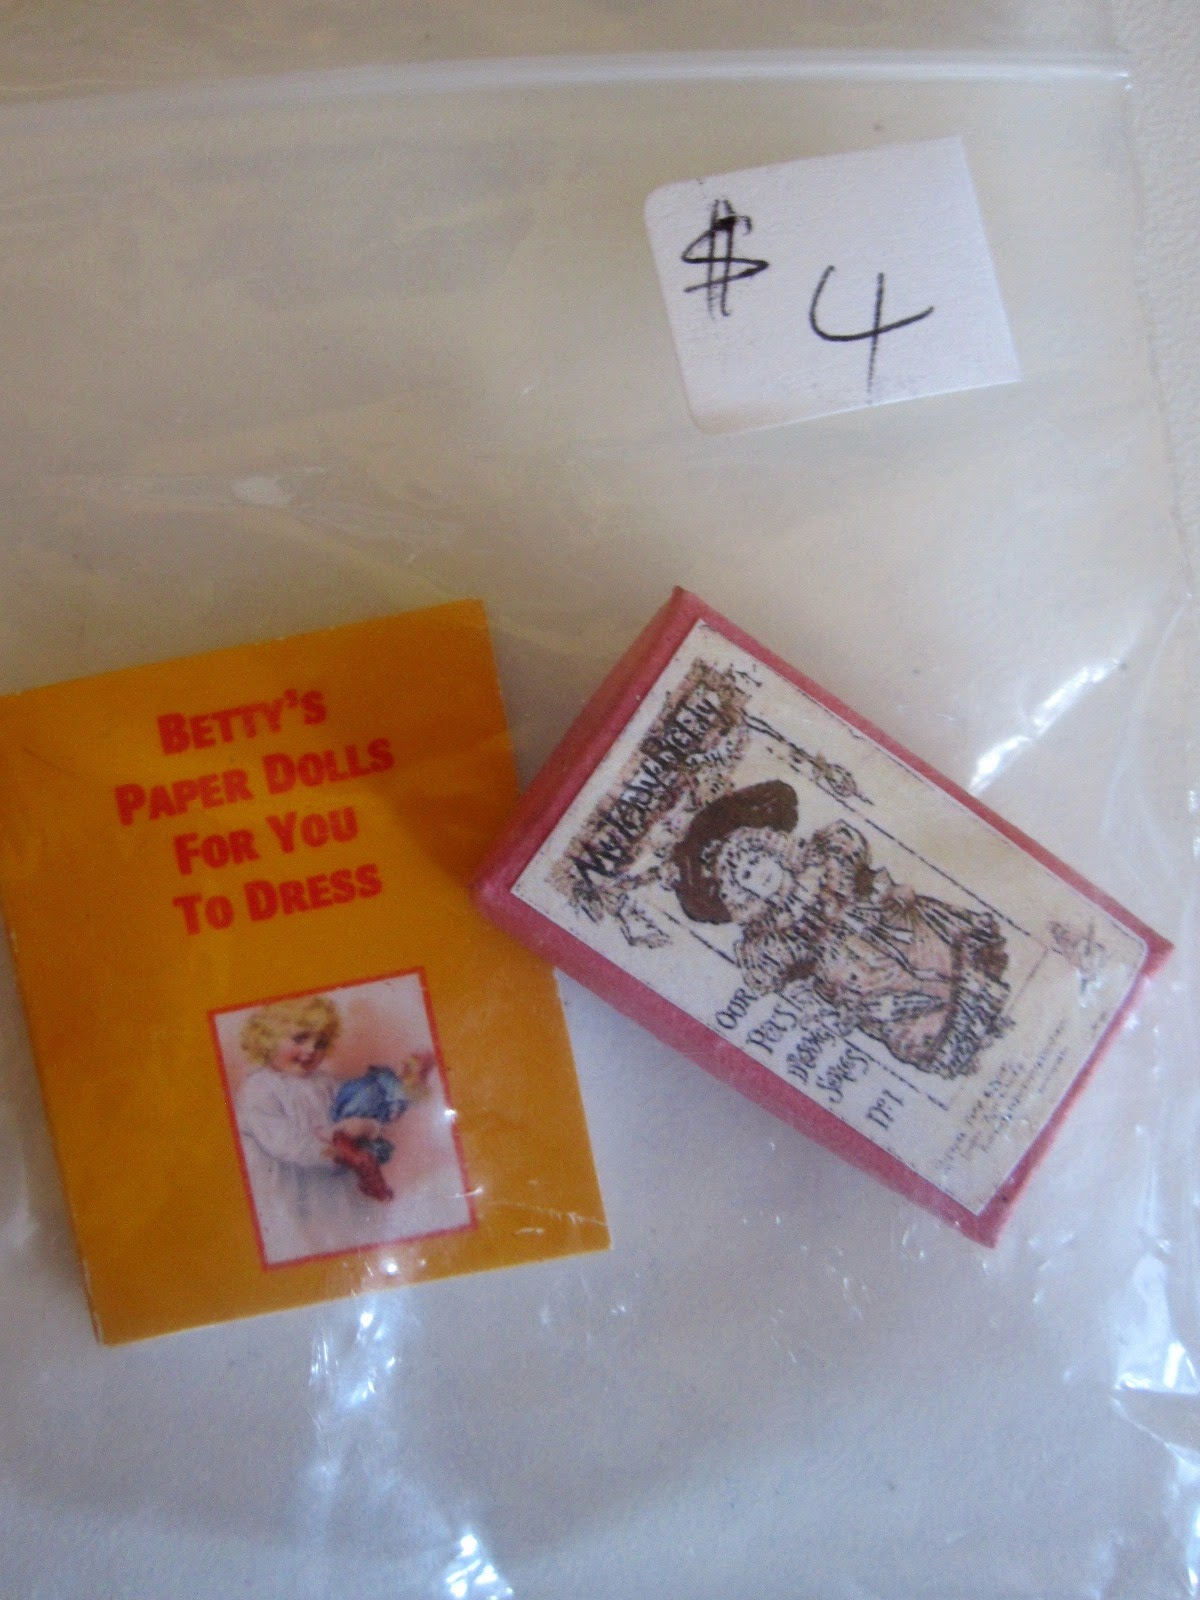 Miniature book of paper dolls and box with image of a Victorian doll on the front, in a bag priced at $4.